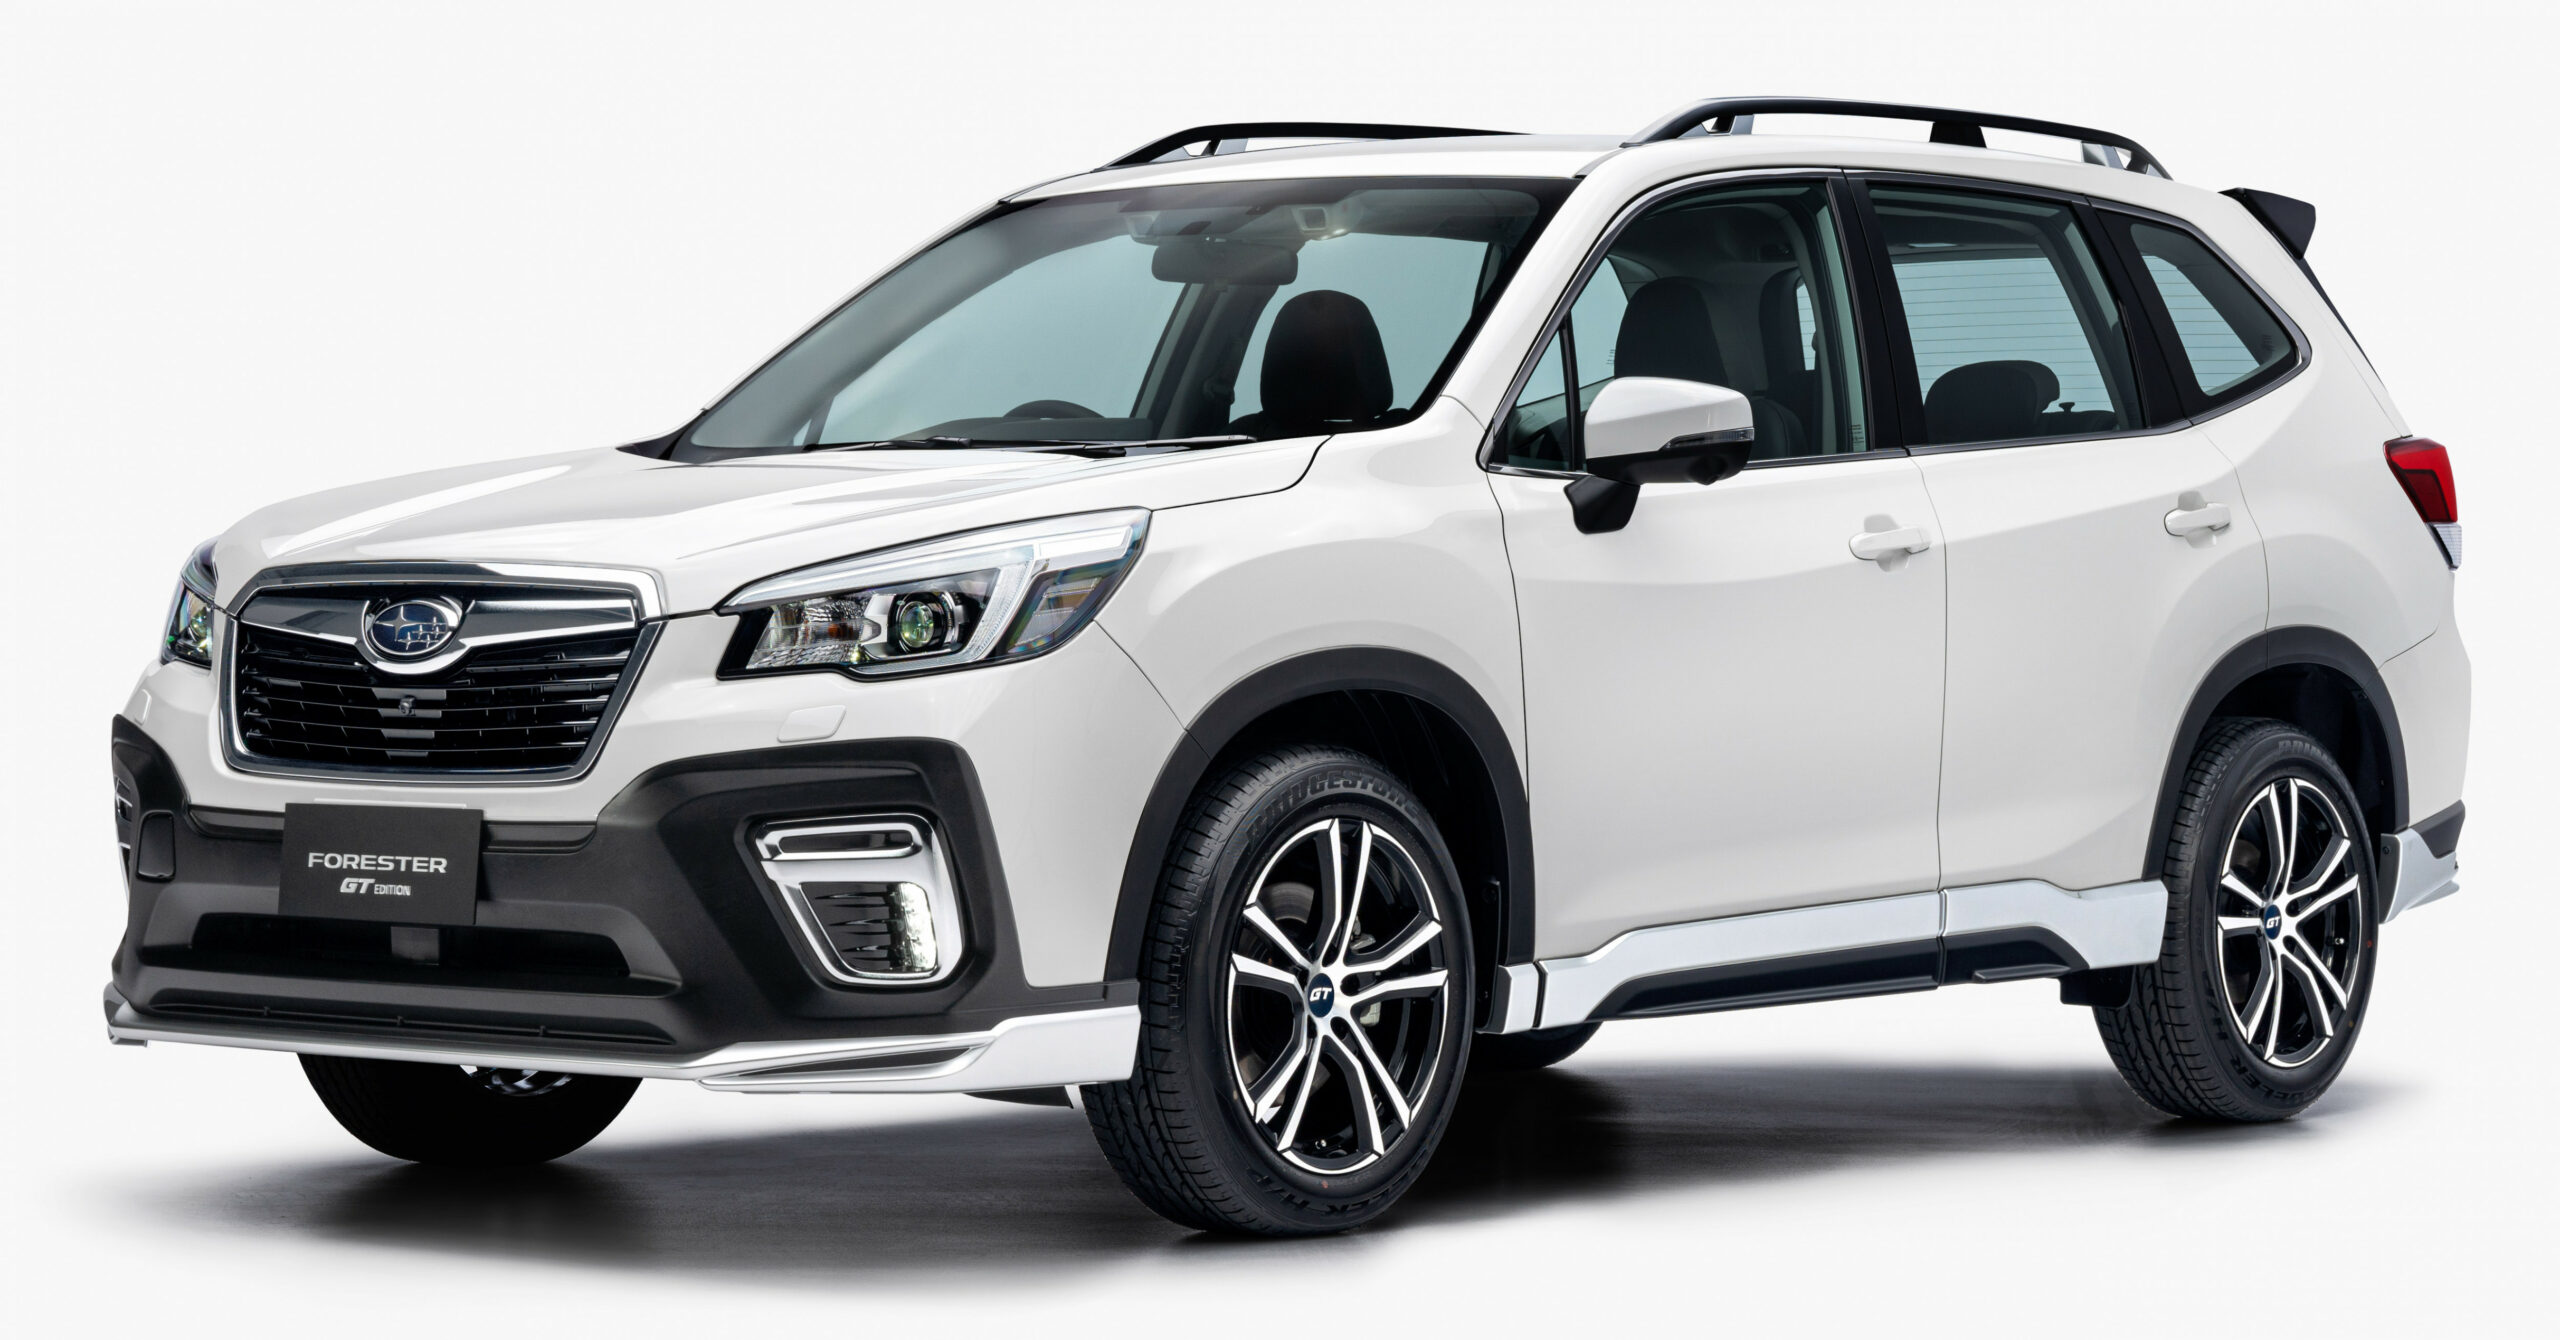 8 Subaru Forester GT Edition launched in Malaysia - 8 PS/8 ..